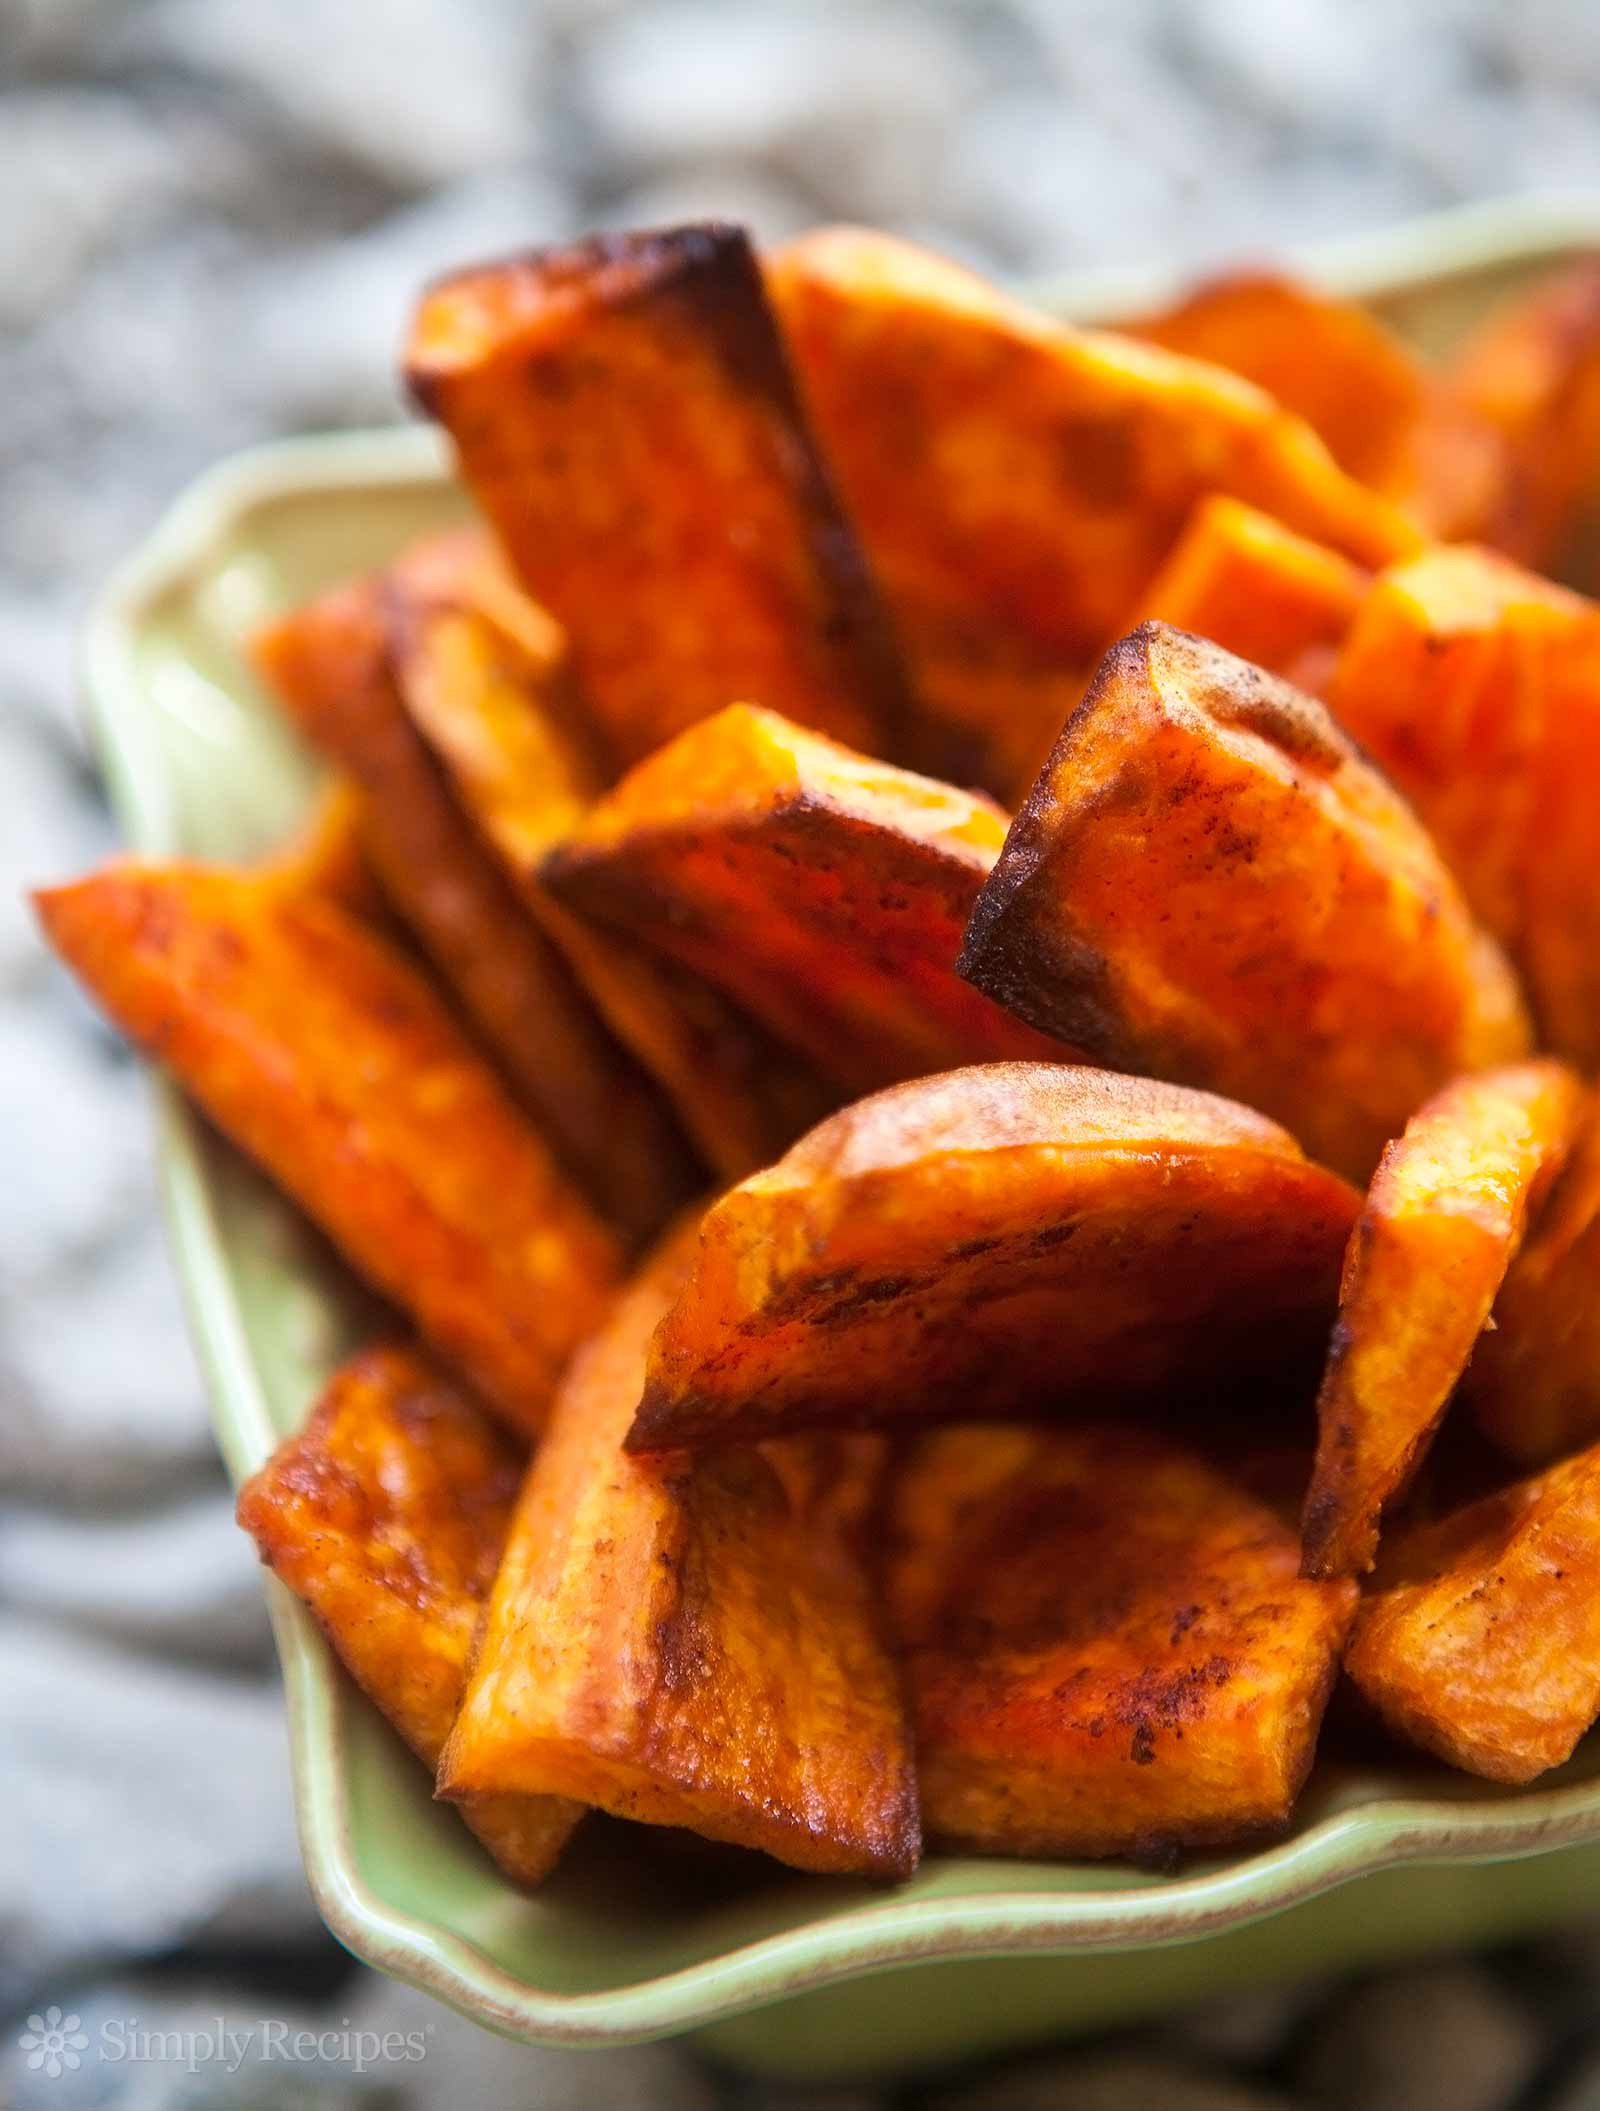 How To Cook A Sweet Potato In The Oven  Oven Baked Sweet Potato Fries Recipe